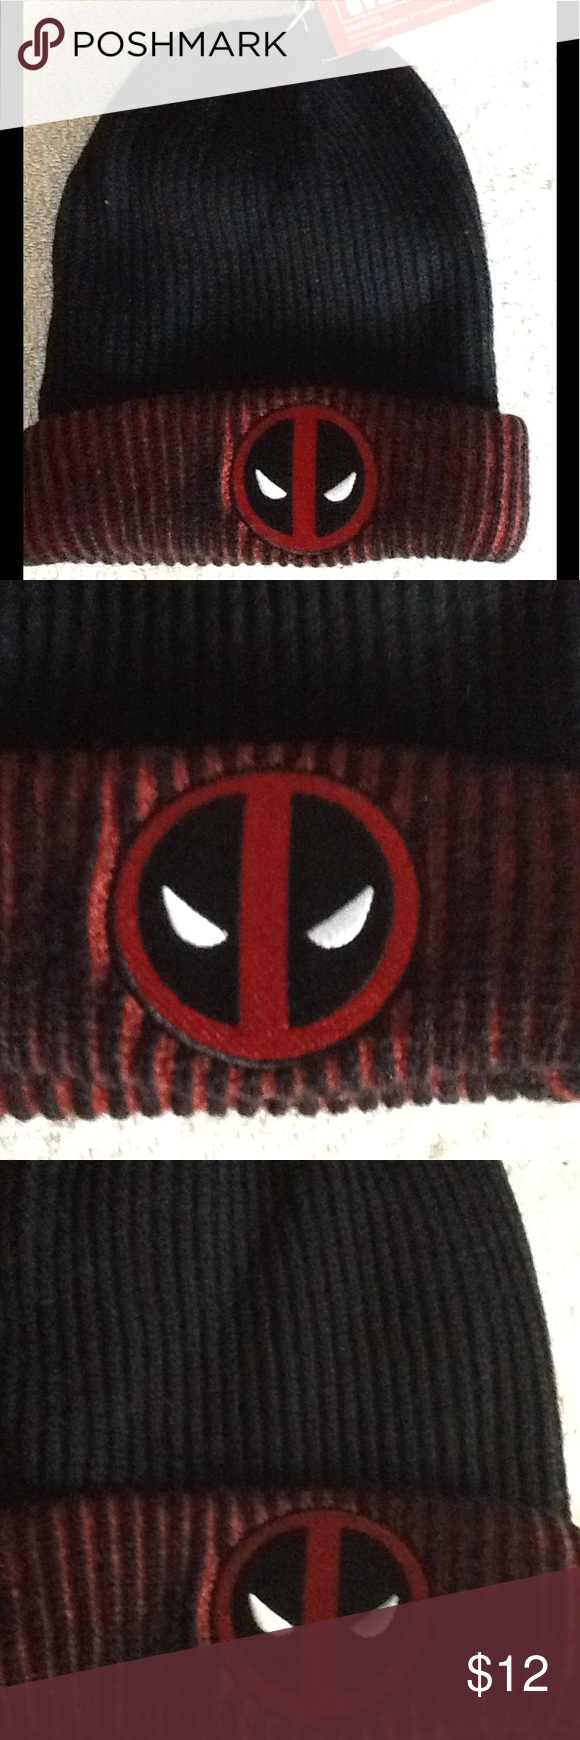 d3c9d034d8410 Deadpool Reversible Beanie NWT Marvel warm winter reversible beanie hat  featuring Deadpool. Cross posted NWT. Smoke free environment Marvel  Accessories Hats